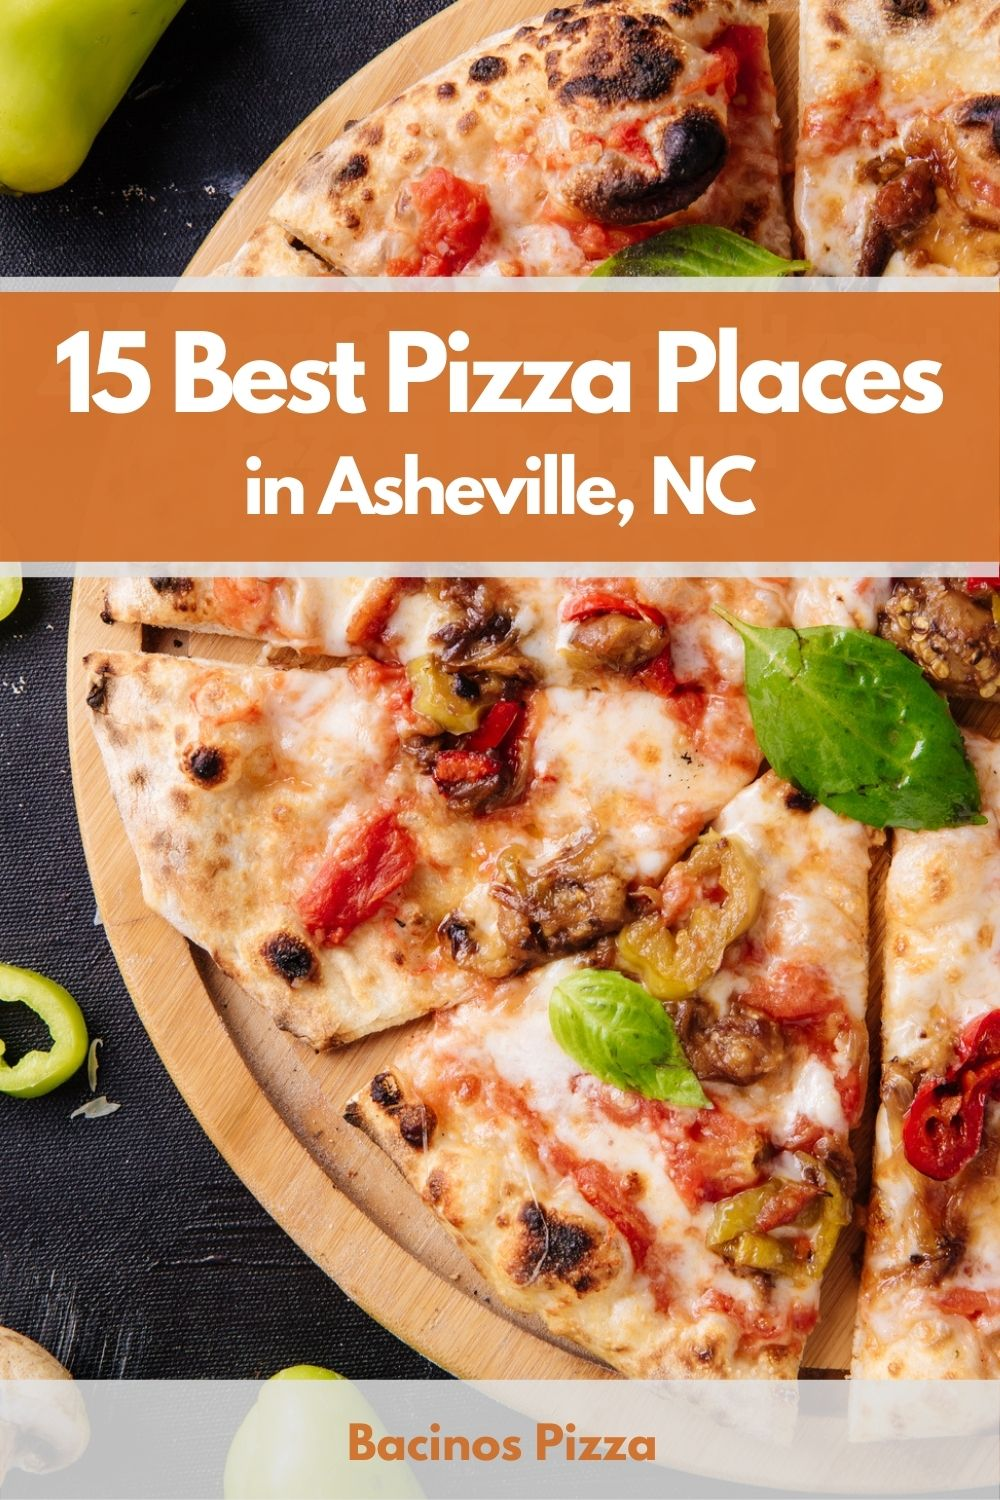 15 Best Pizza Places in Asheville, NC pin 2